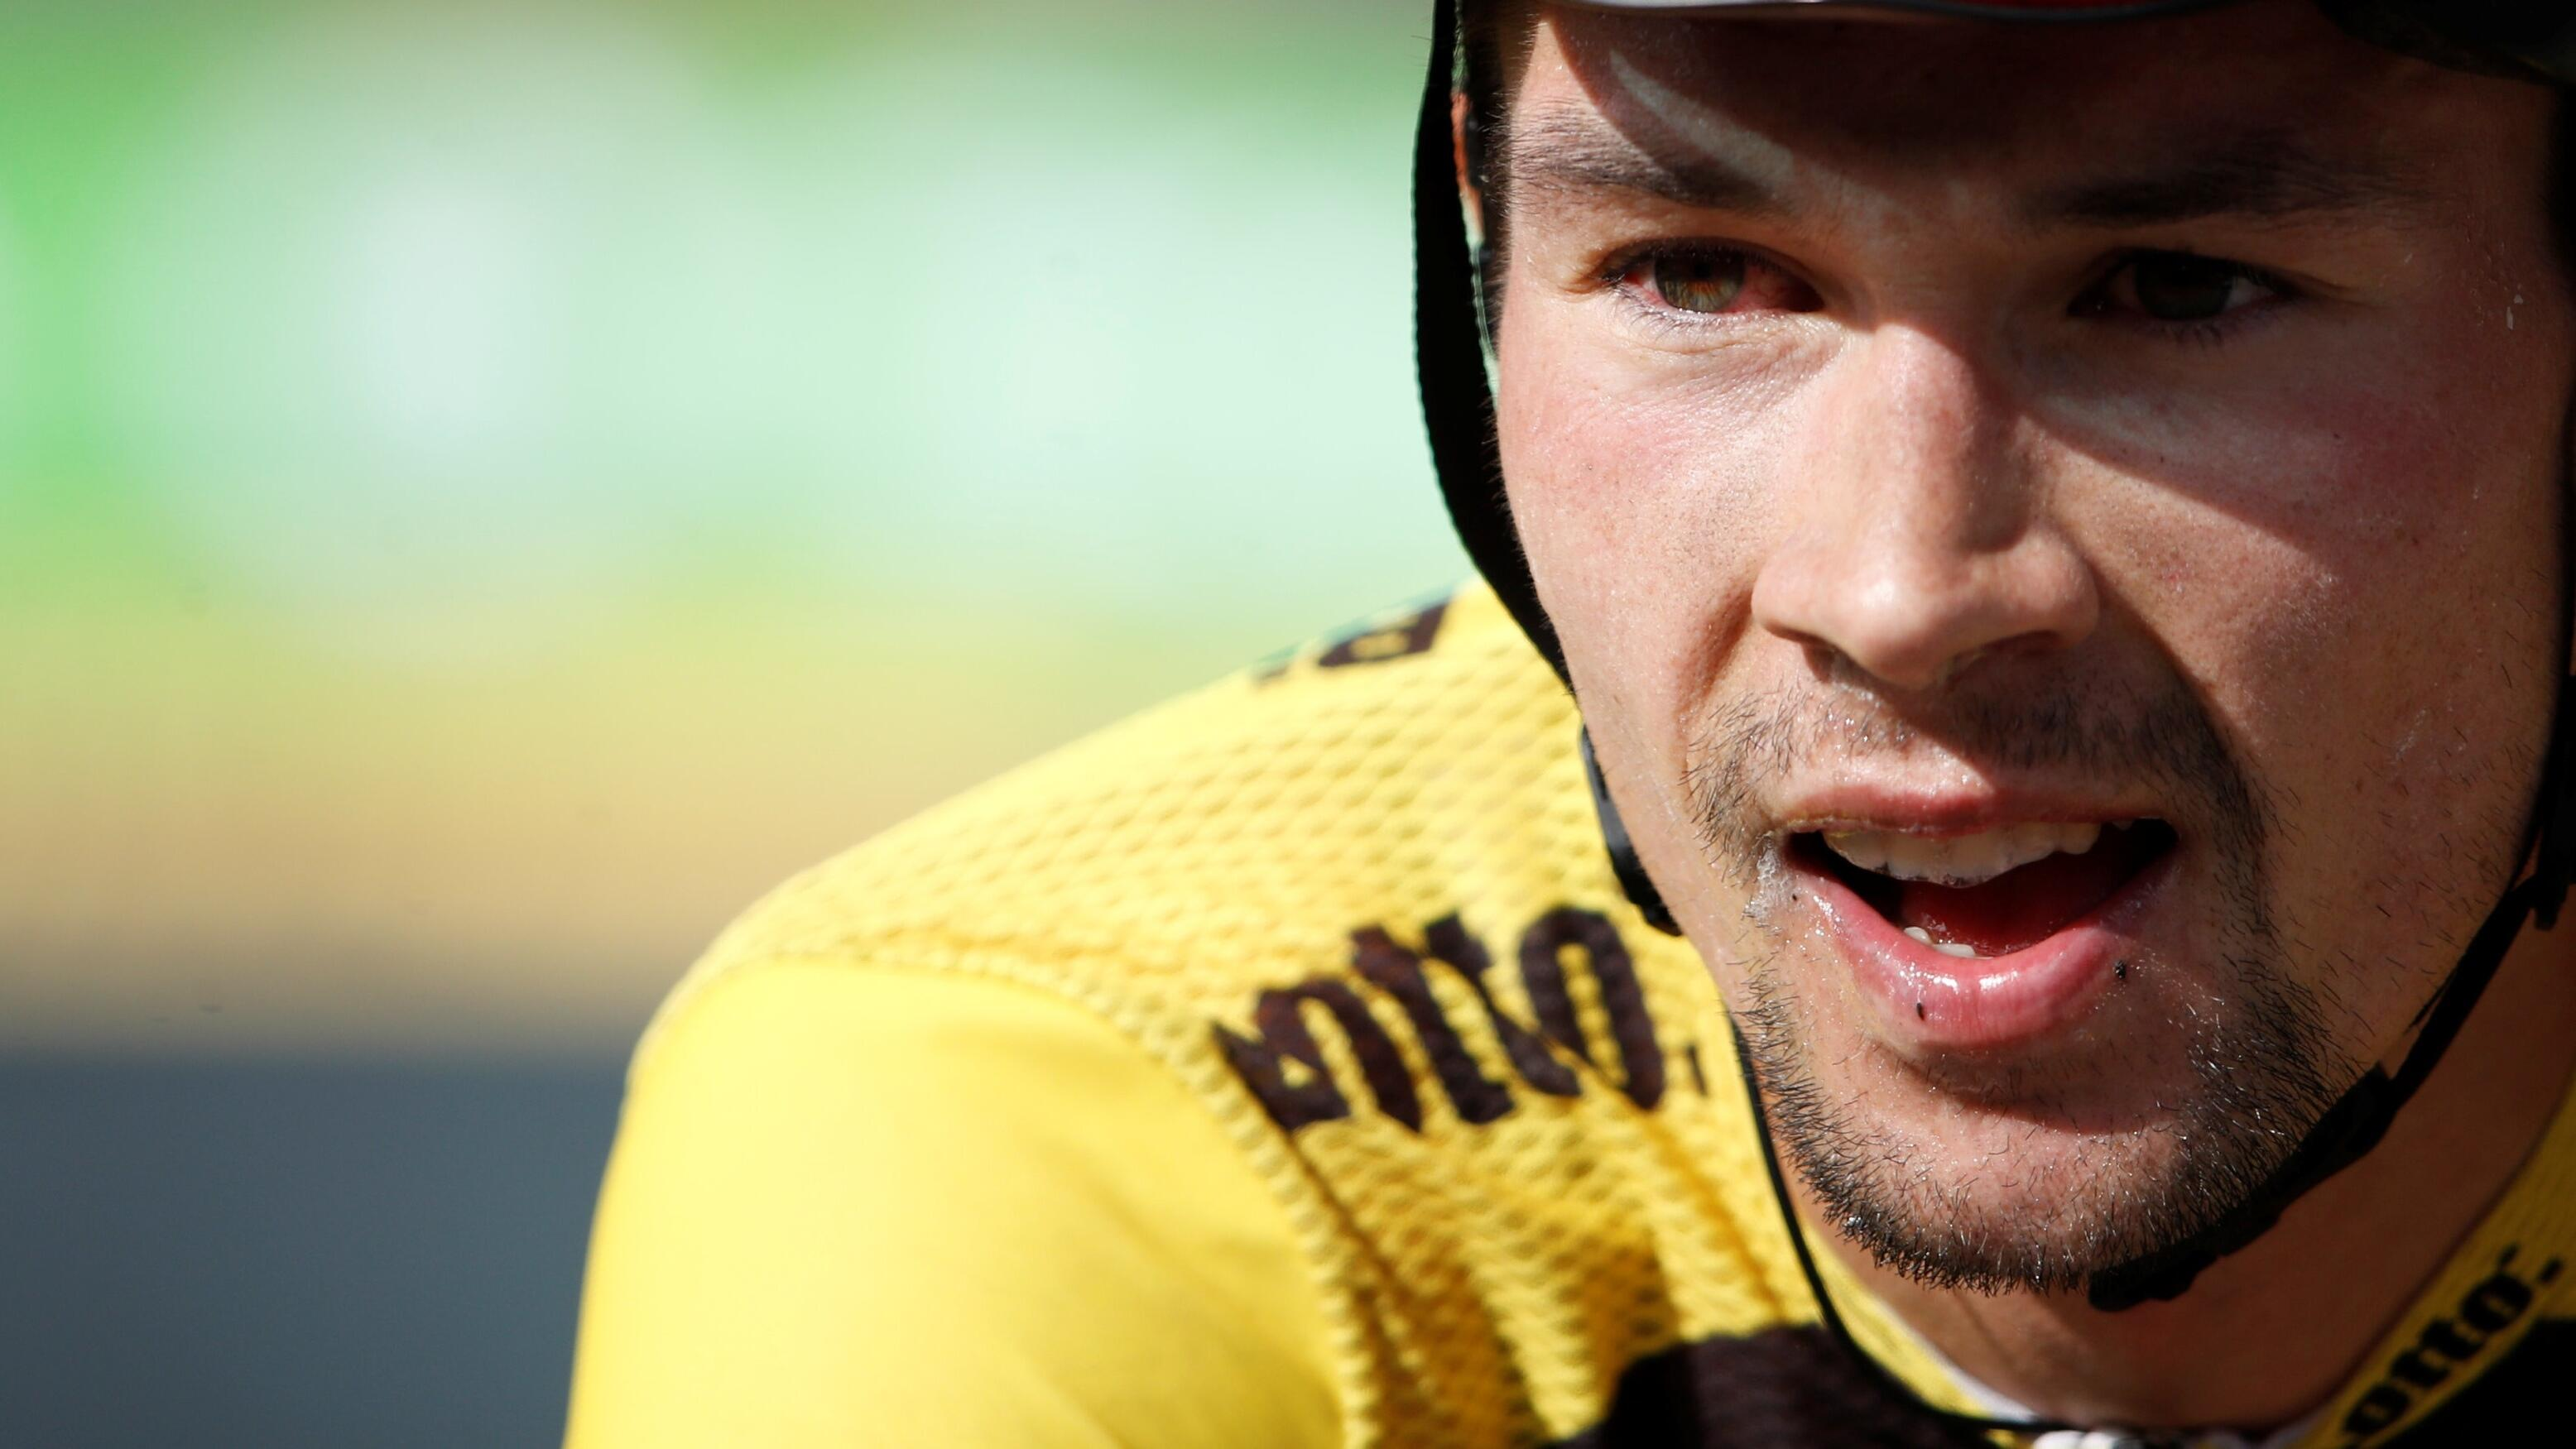 Tour de france stage 13 betting odds horse racing betting sites